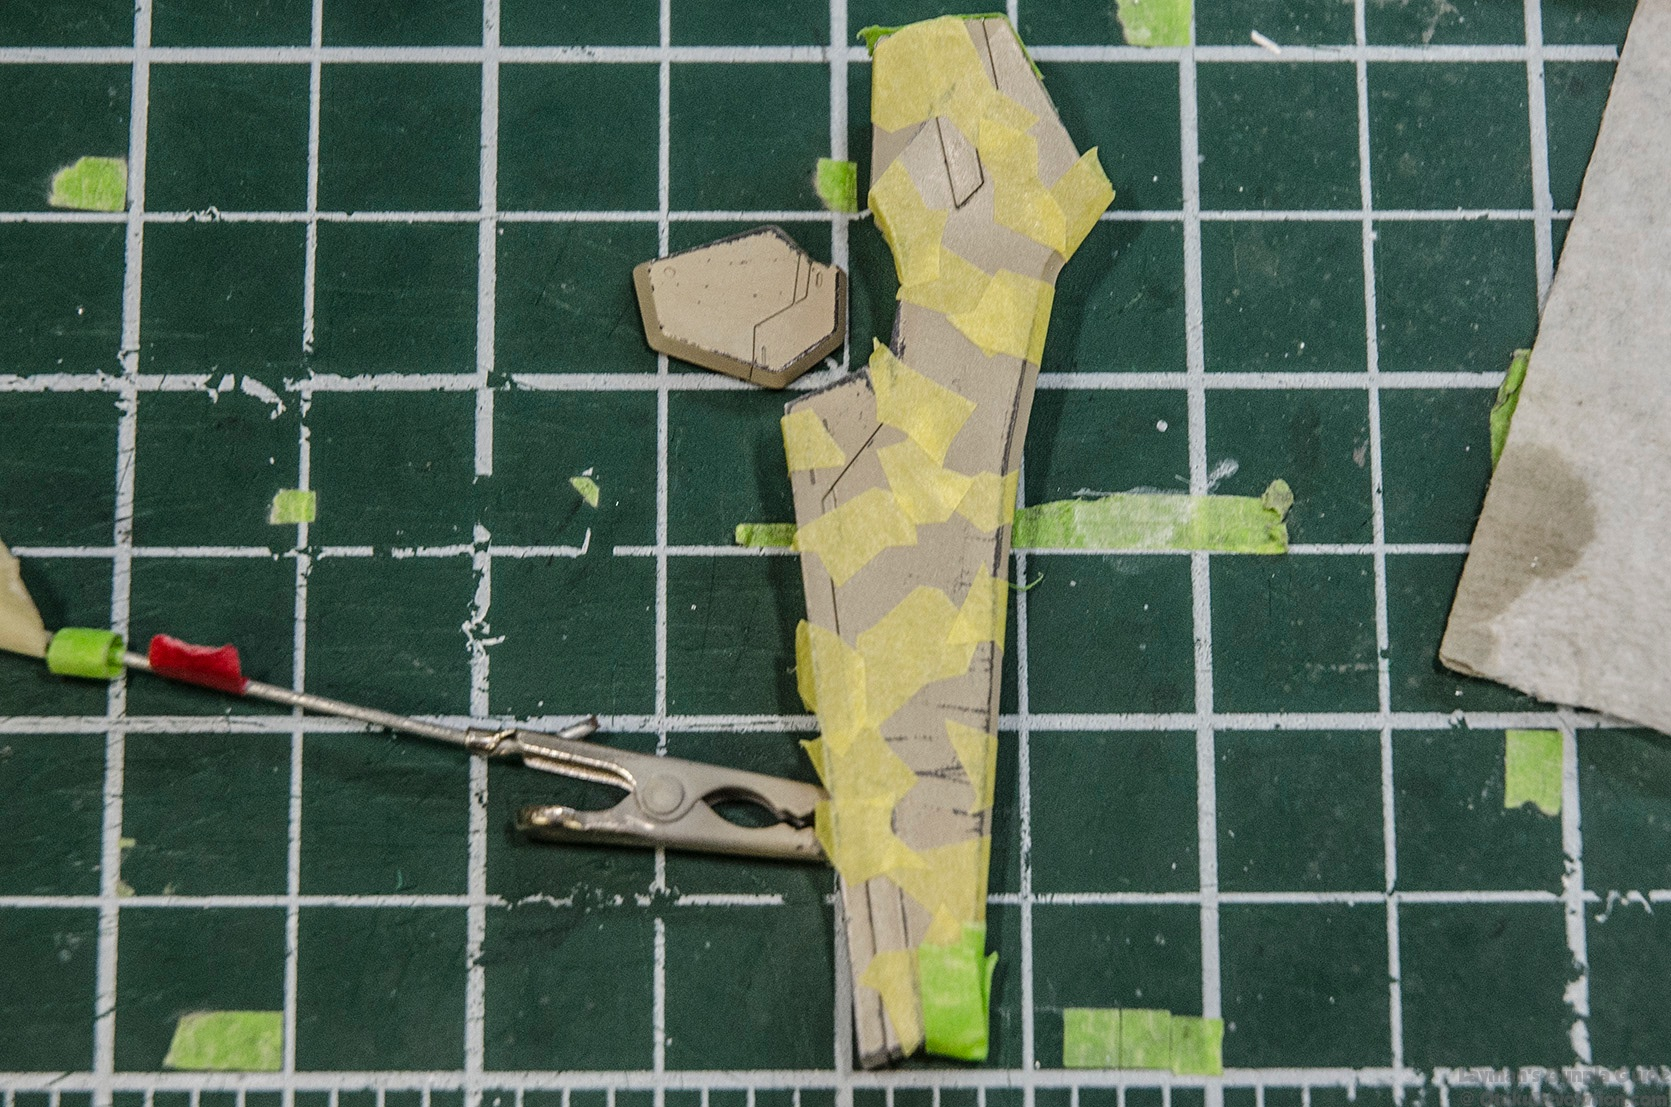 layman s gunpla guide advanced hairspray chipping tutorial cover the masked parts a few layers of hairspray wait an hour then apply the second colour to your two tone camouflage paint scheme